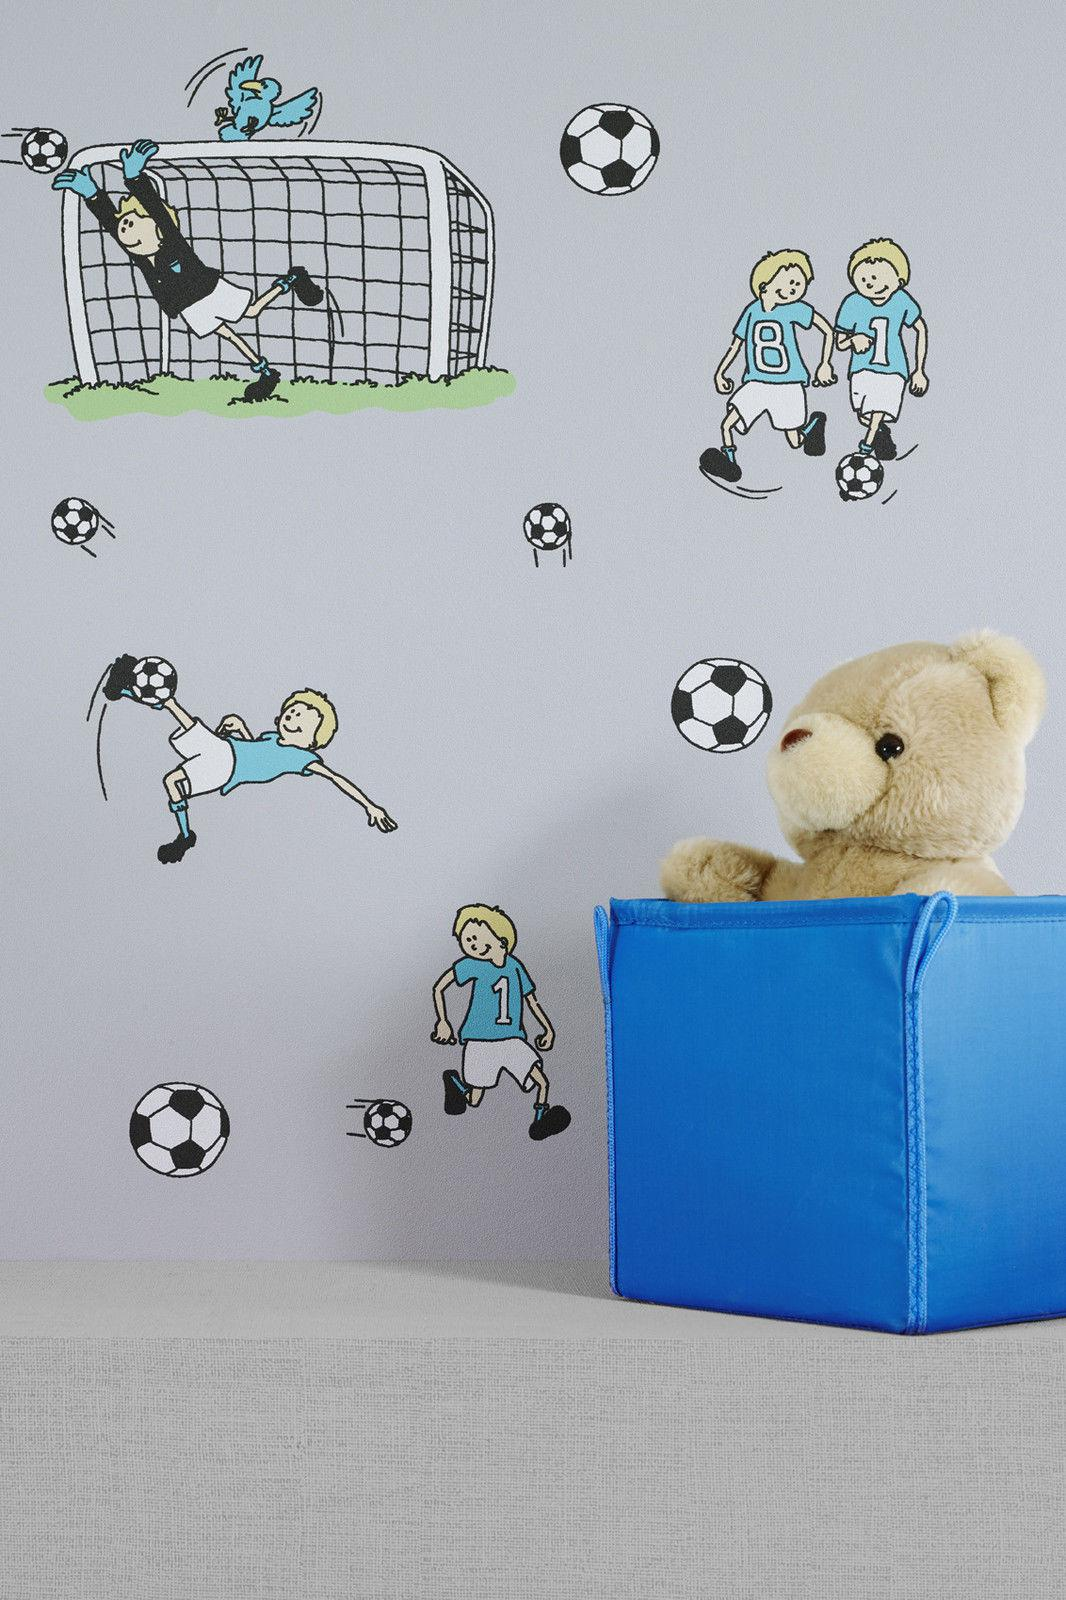 vlies tapete fu ball kinder jungen zimmer fussball tapete grau t rkis gr n kaufen bei. Black Bedroom Furniture Sets. Home Design Ideas